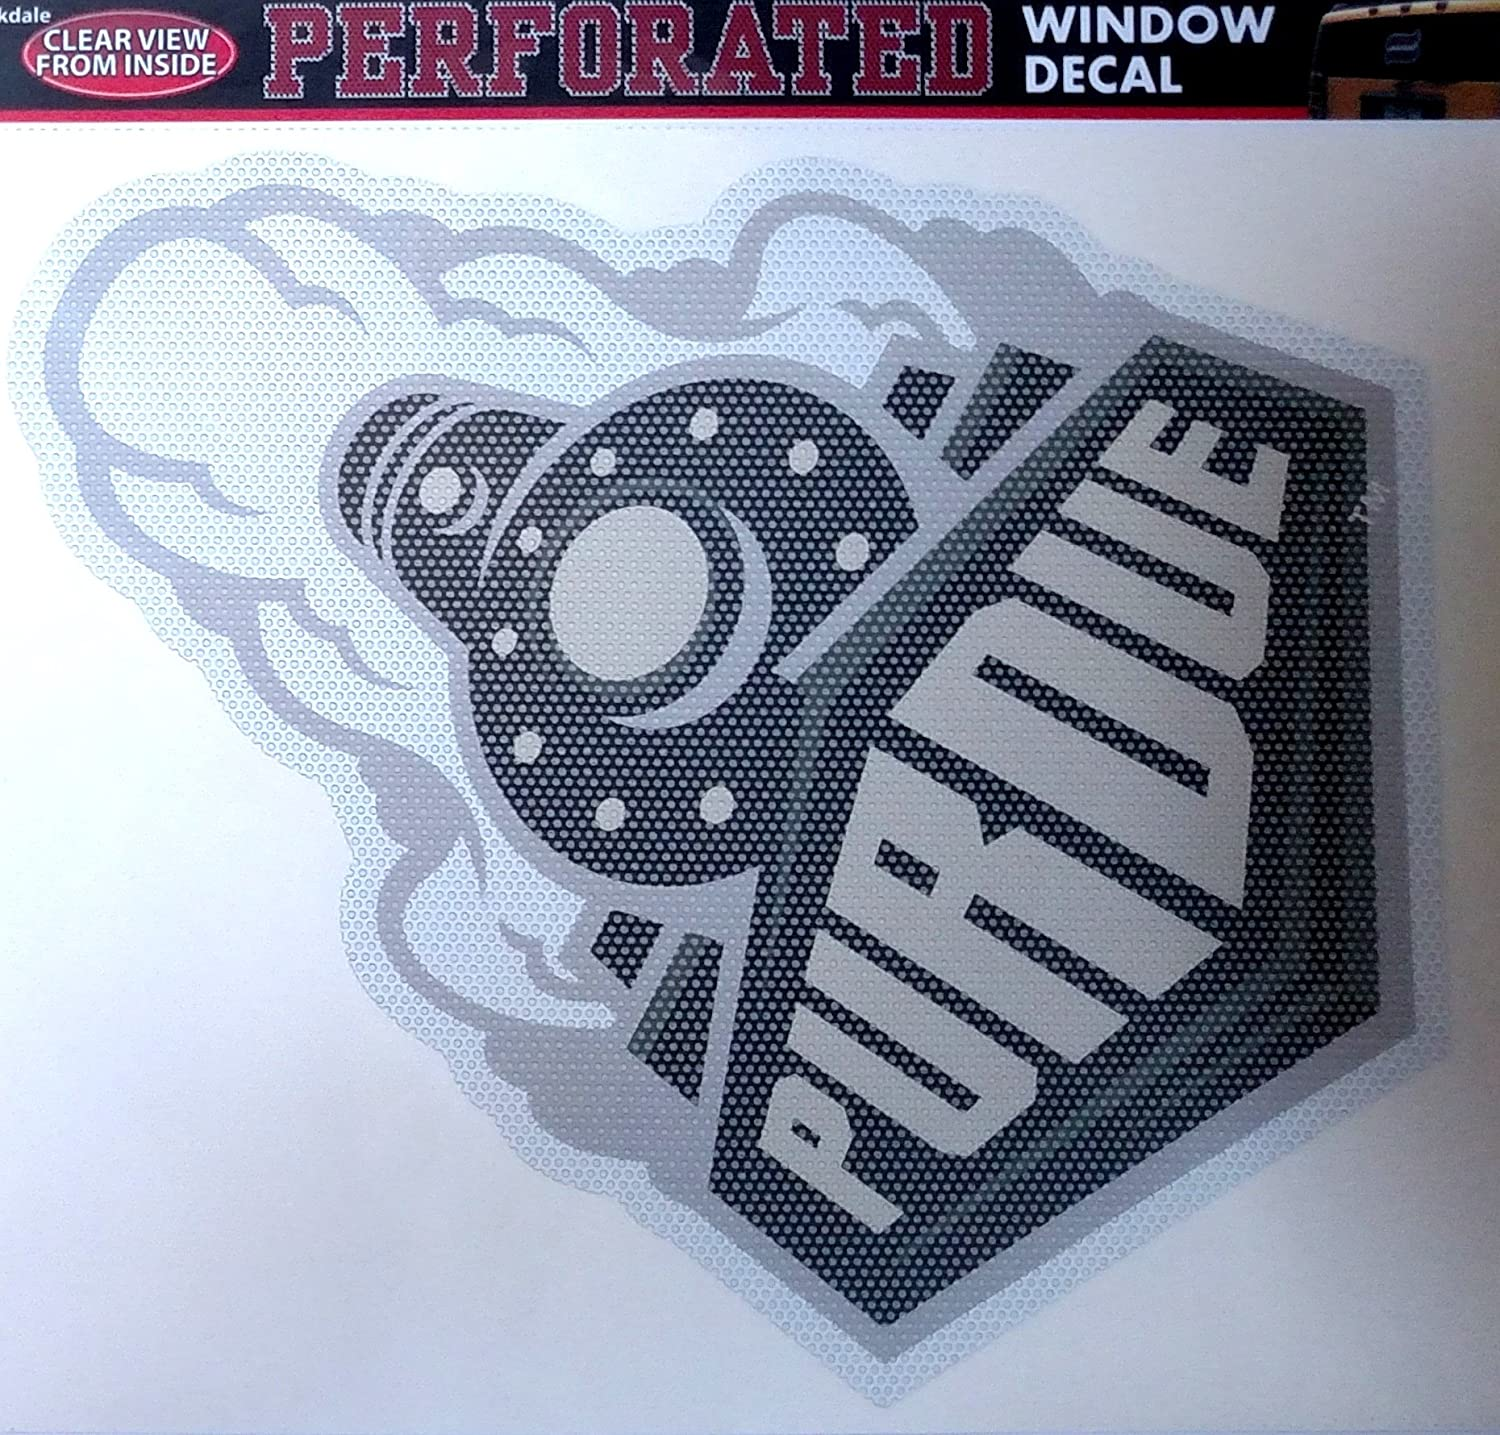 Purdue Boilermakers Large 12' Perforated Auto Window Film Glass Decal University of Stockdale